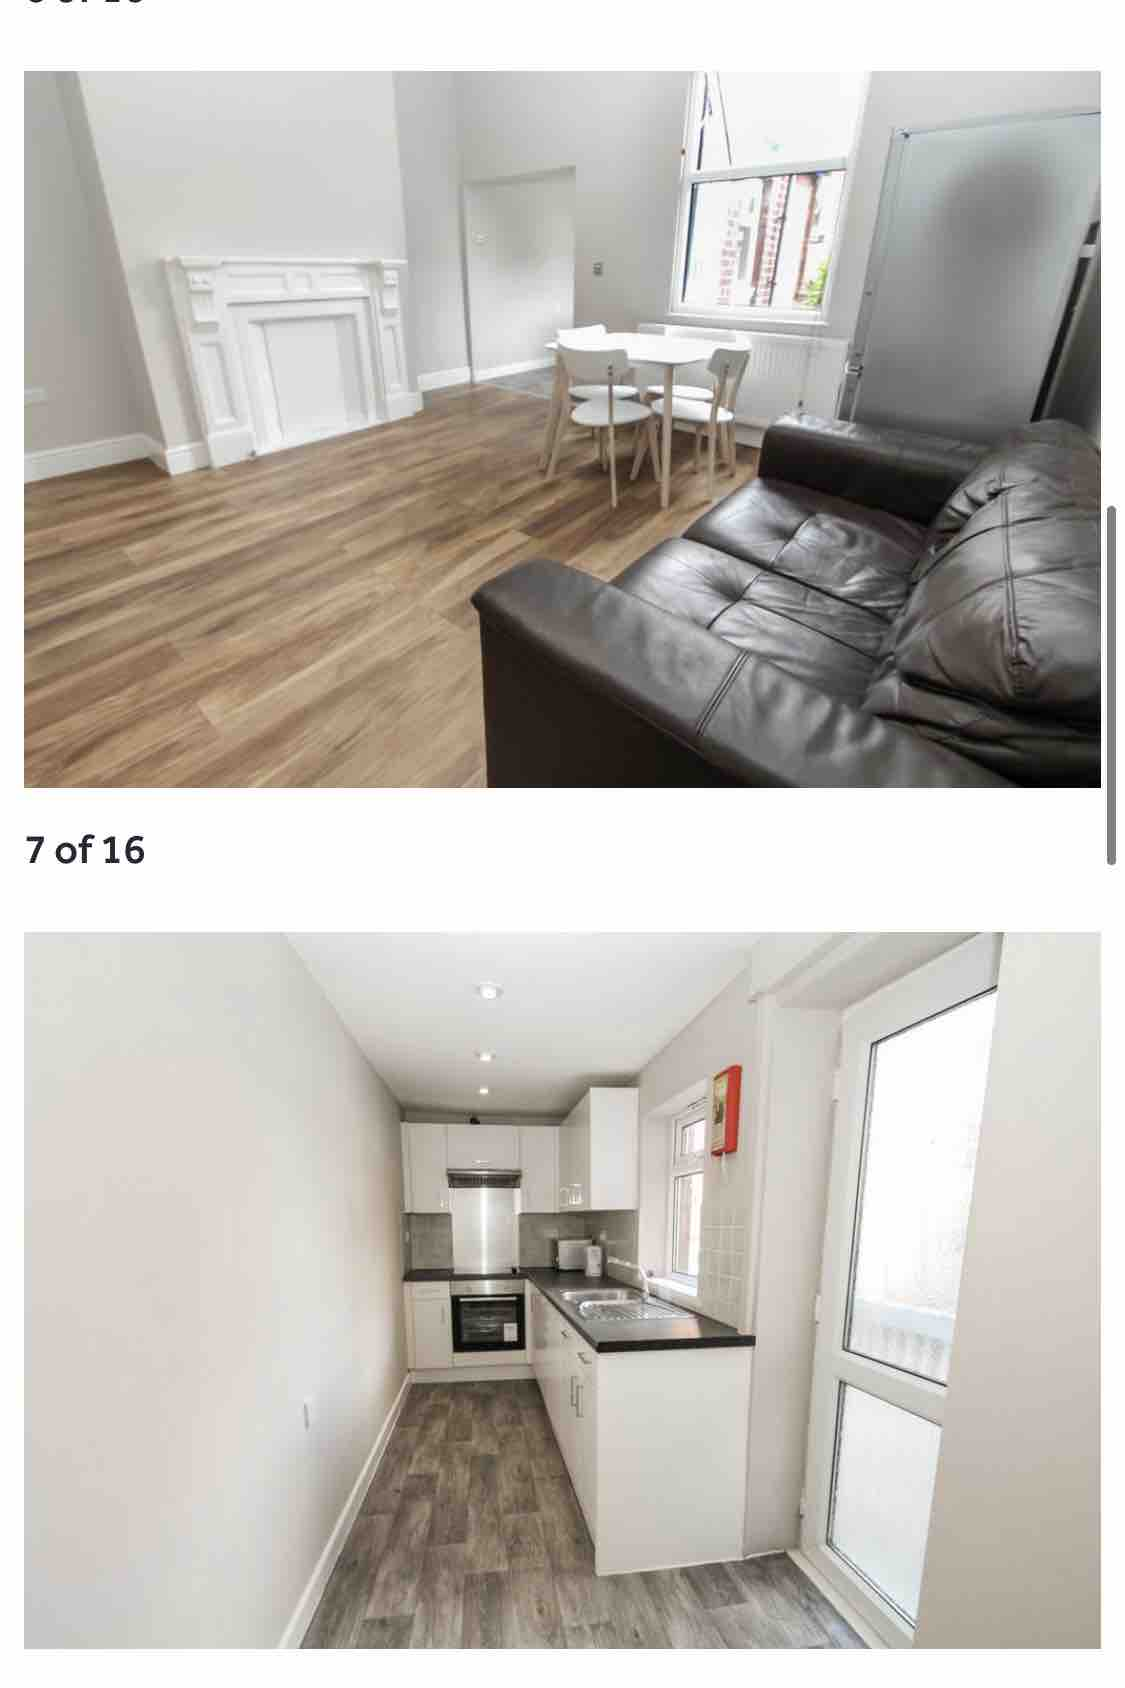 1 room in Leeds, Leeds, LS29AZ RoomsLocal image